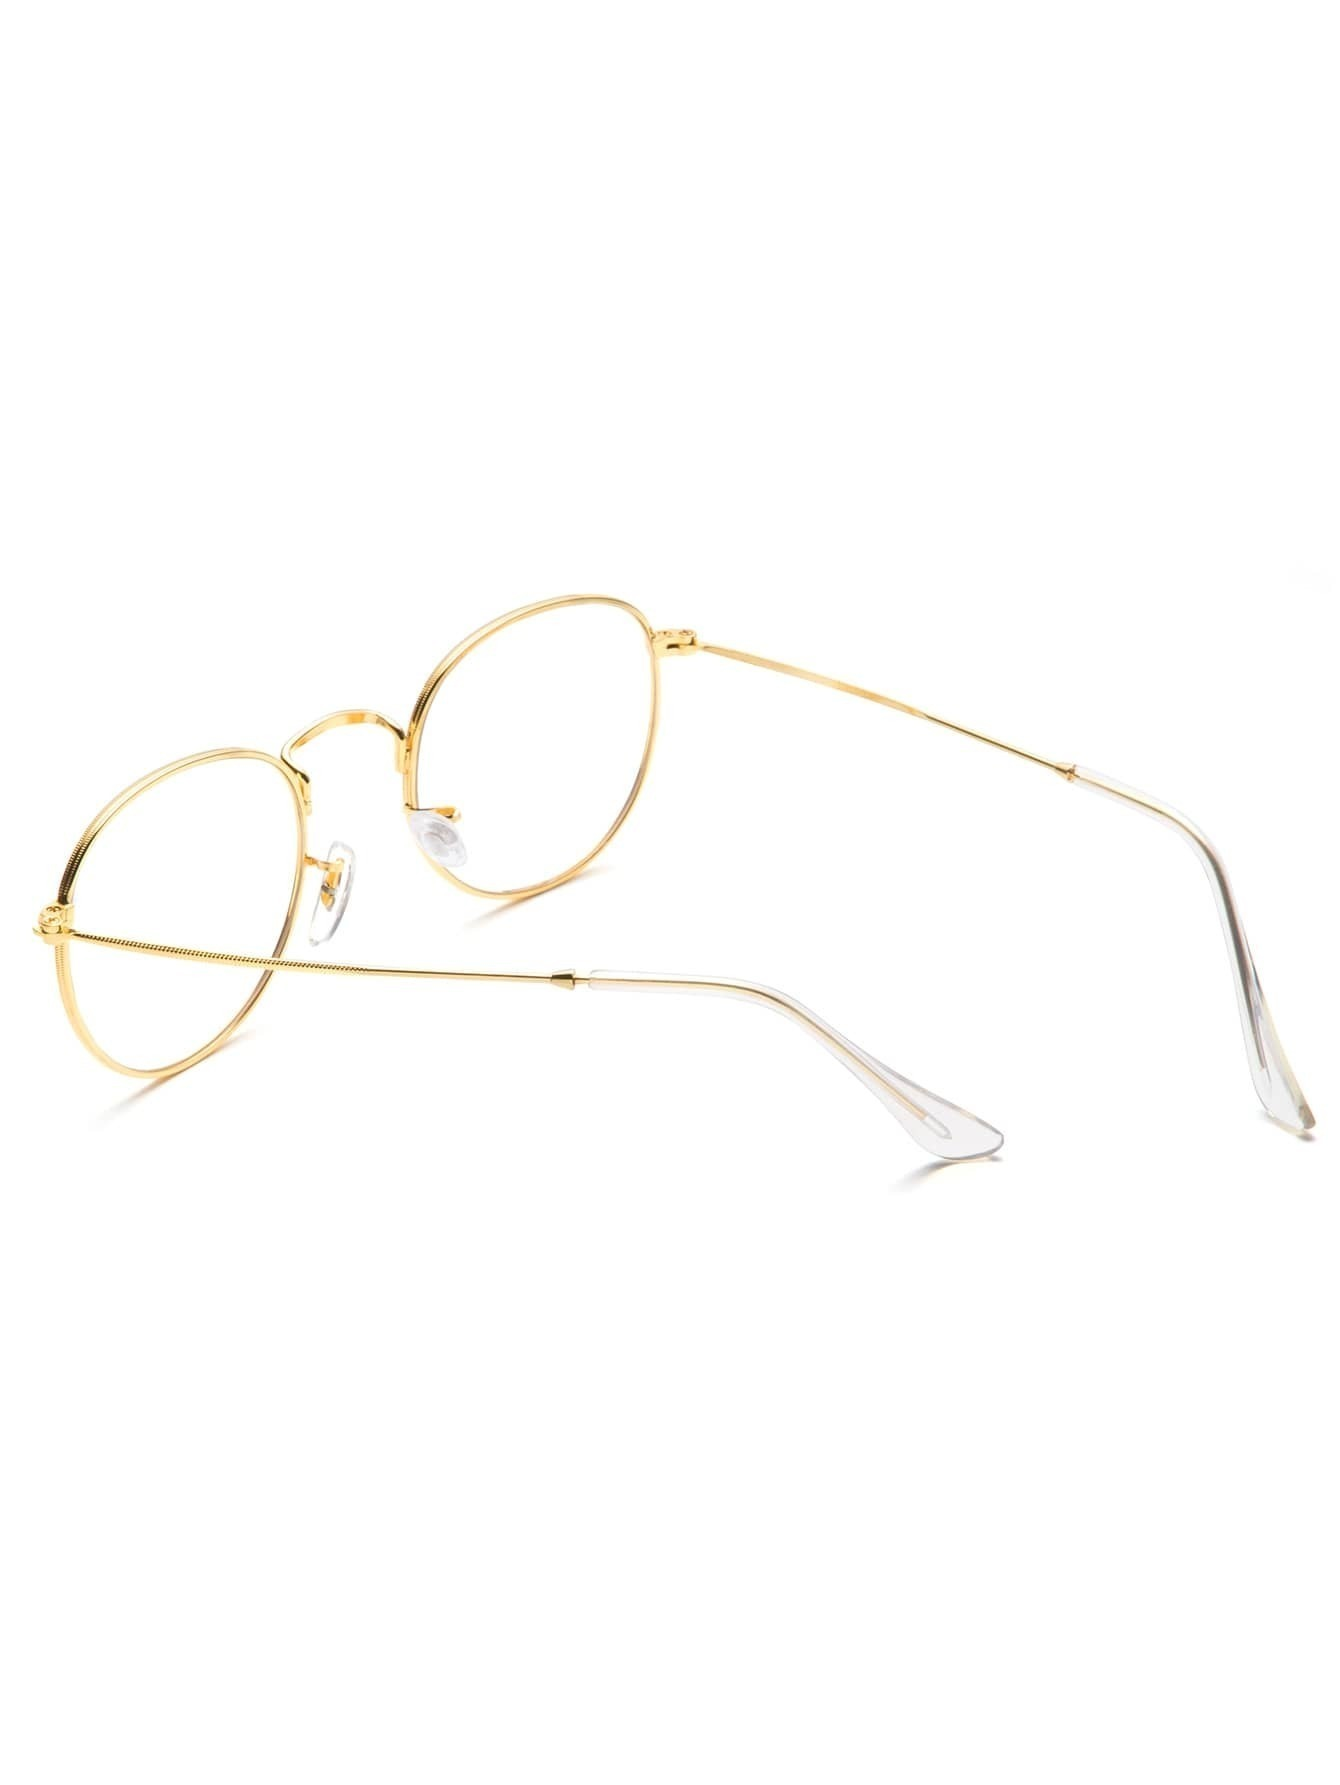 gold frame clear lens glasses sunglass160909312_1 sunglass160909312_2 size reference